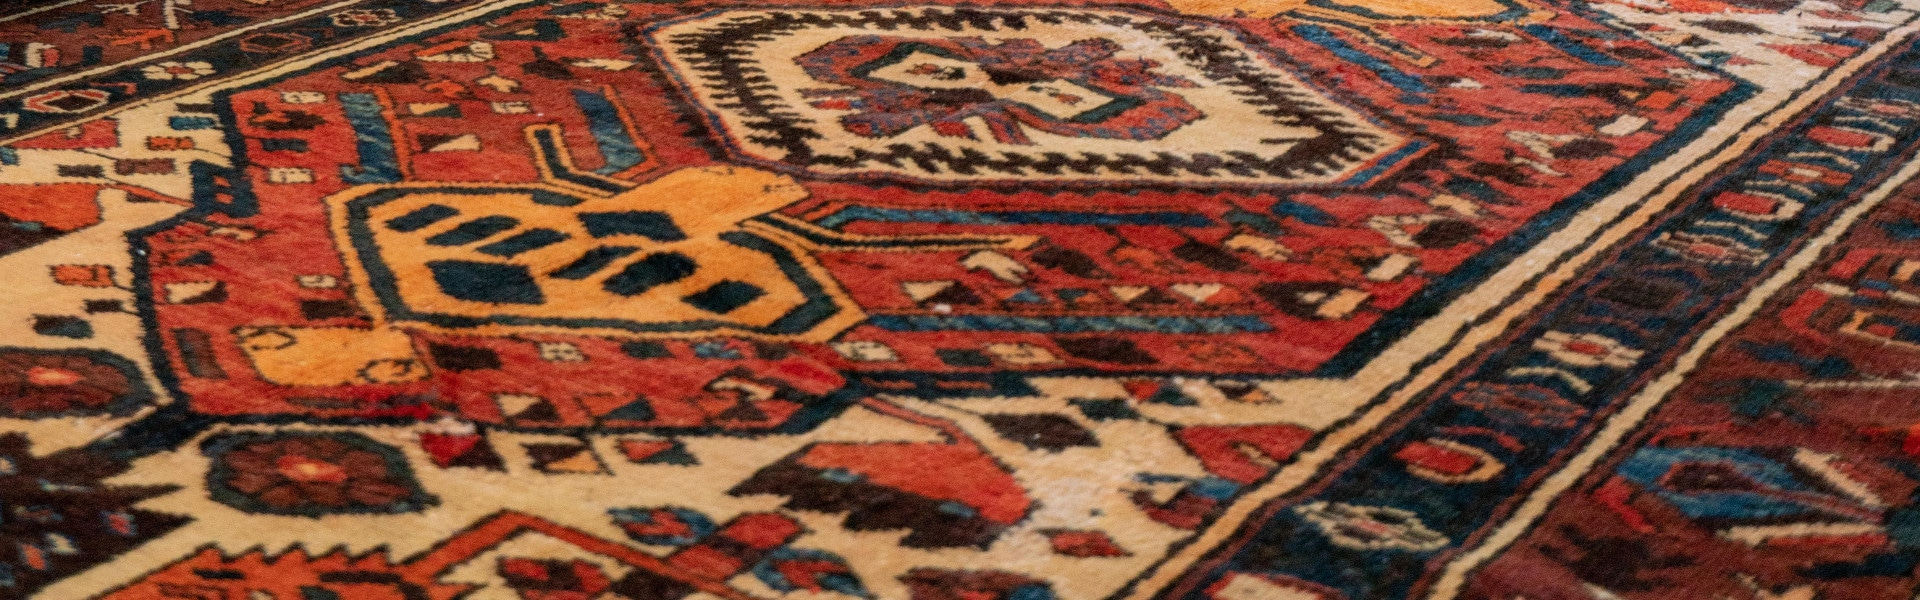 Area Rug Cleaning Toronto